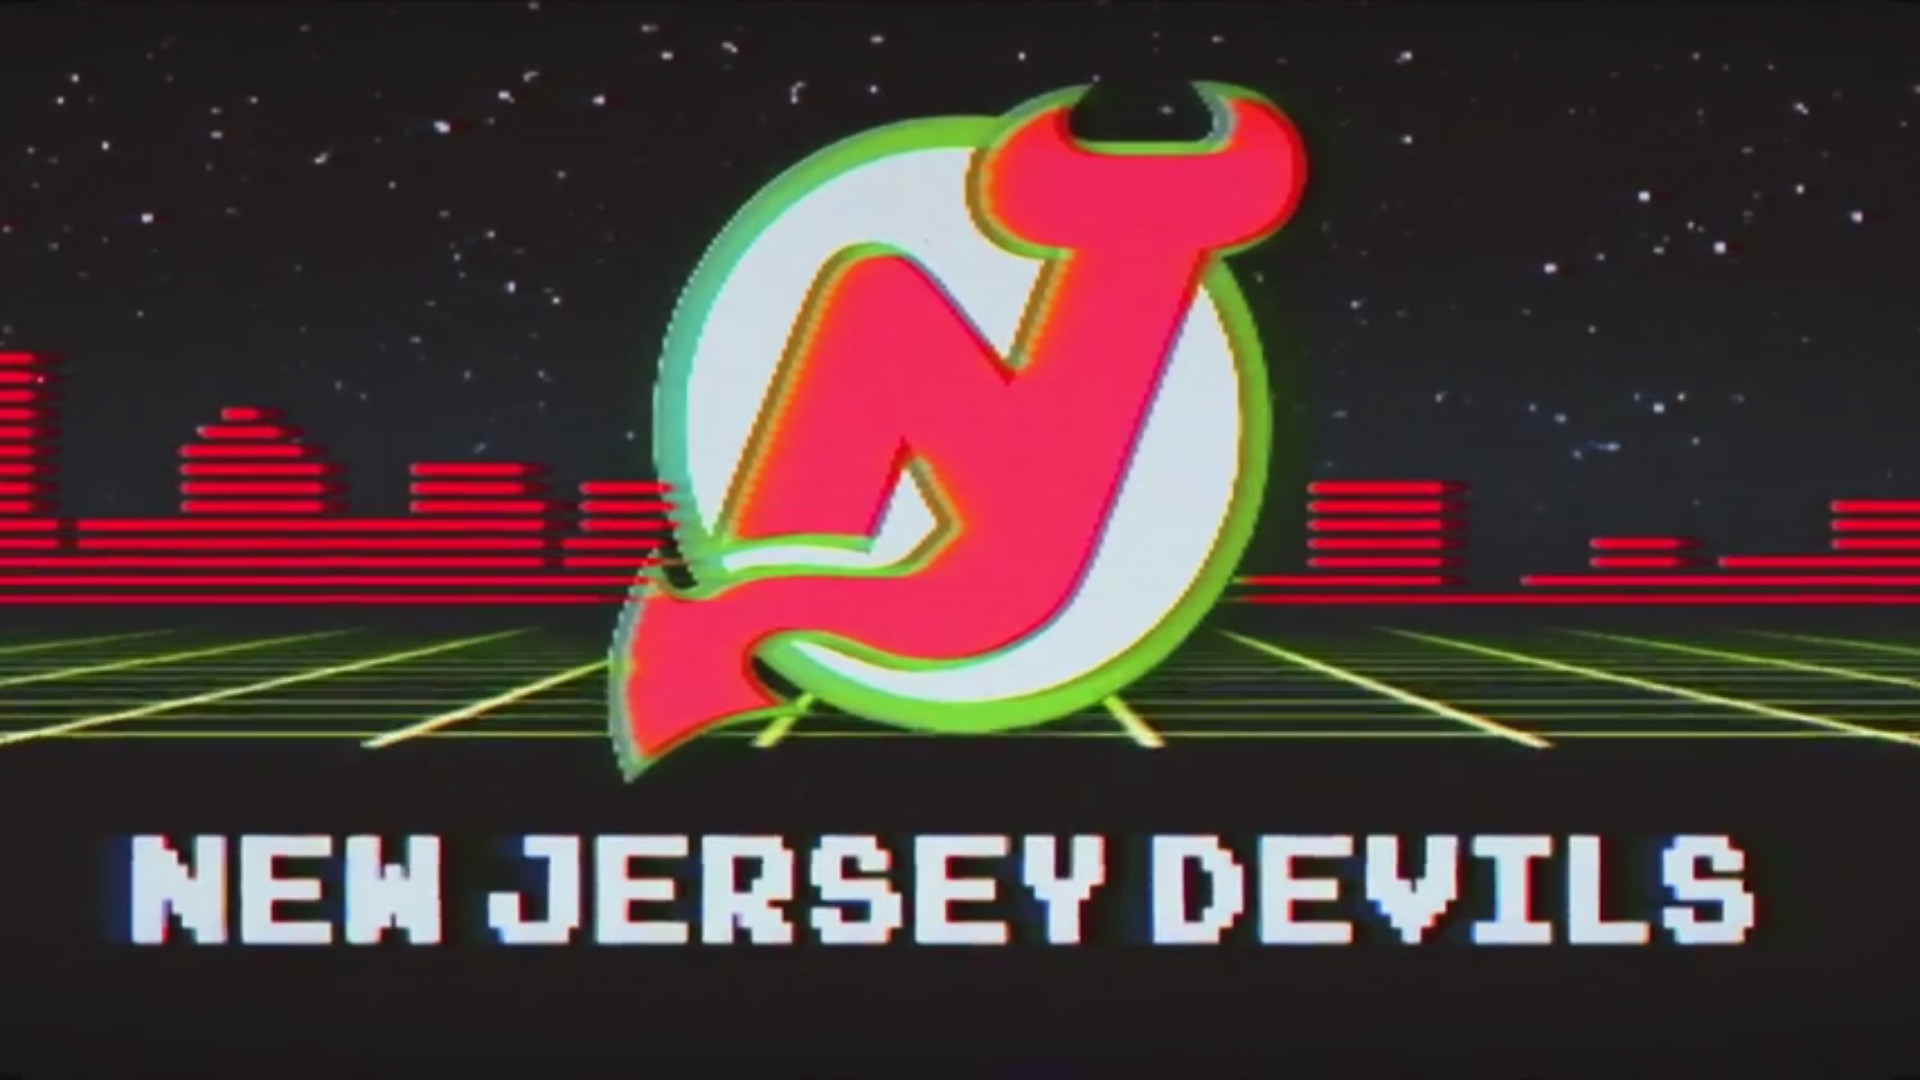 1920x1080 Here's a wallpaper-sized version of the retro Devils logo from the retro  night promo!